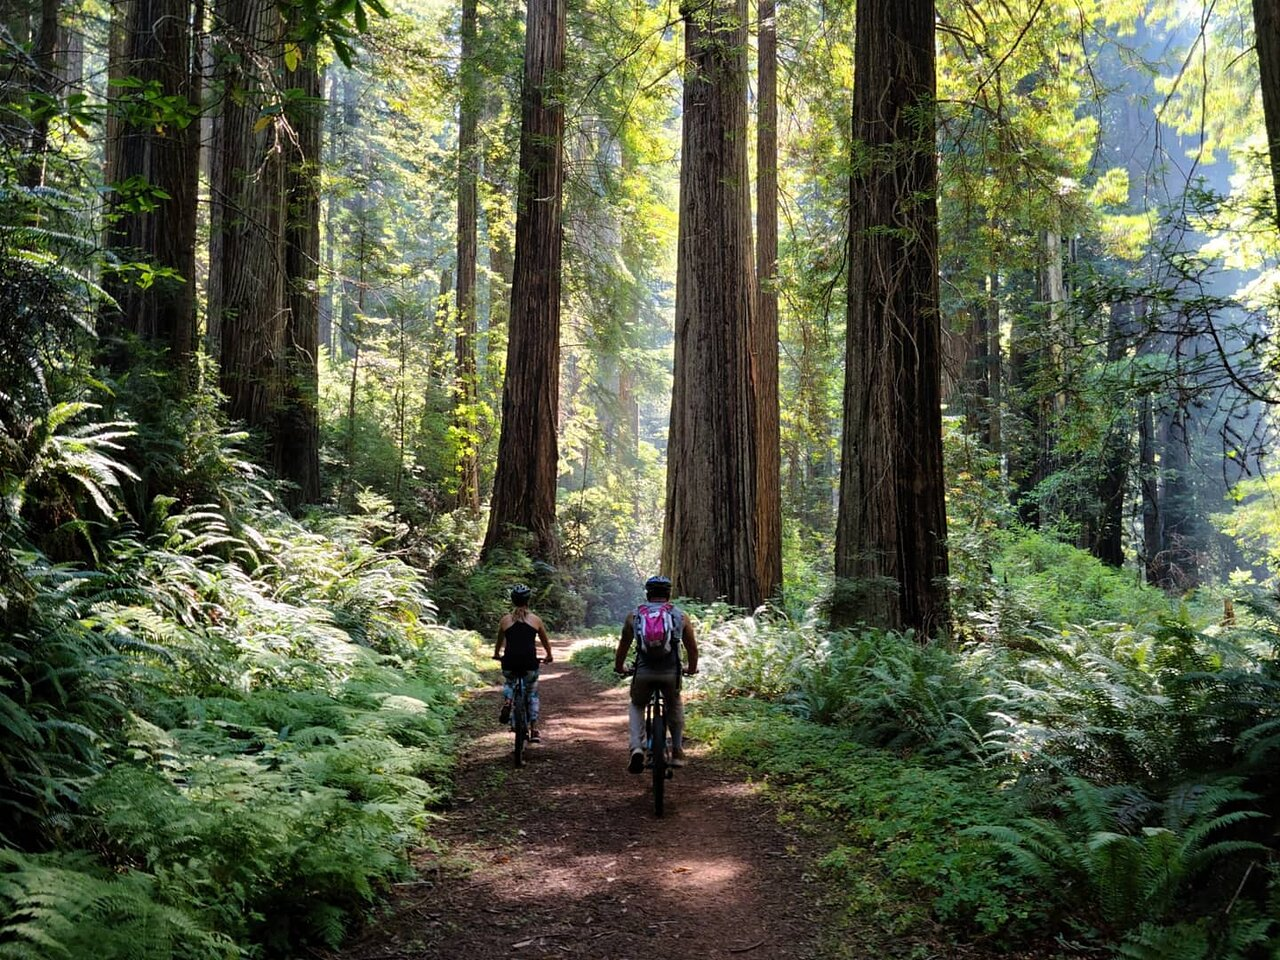 Take A Bike Tour Through The Redwood Forest For The Ultimate Northern California Adventure